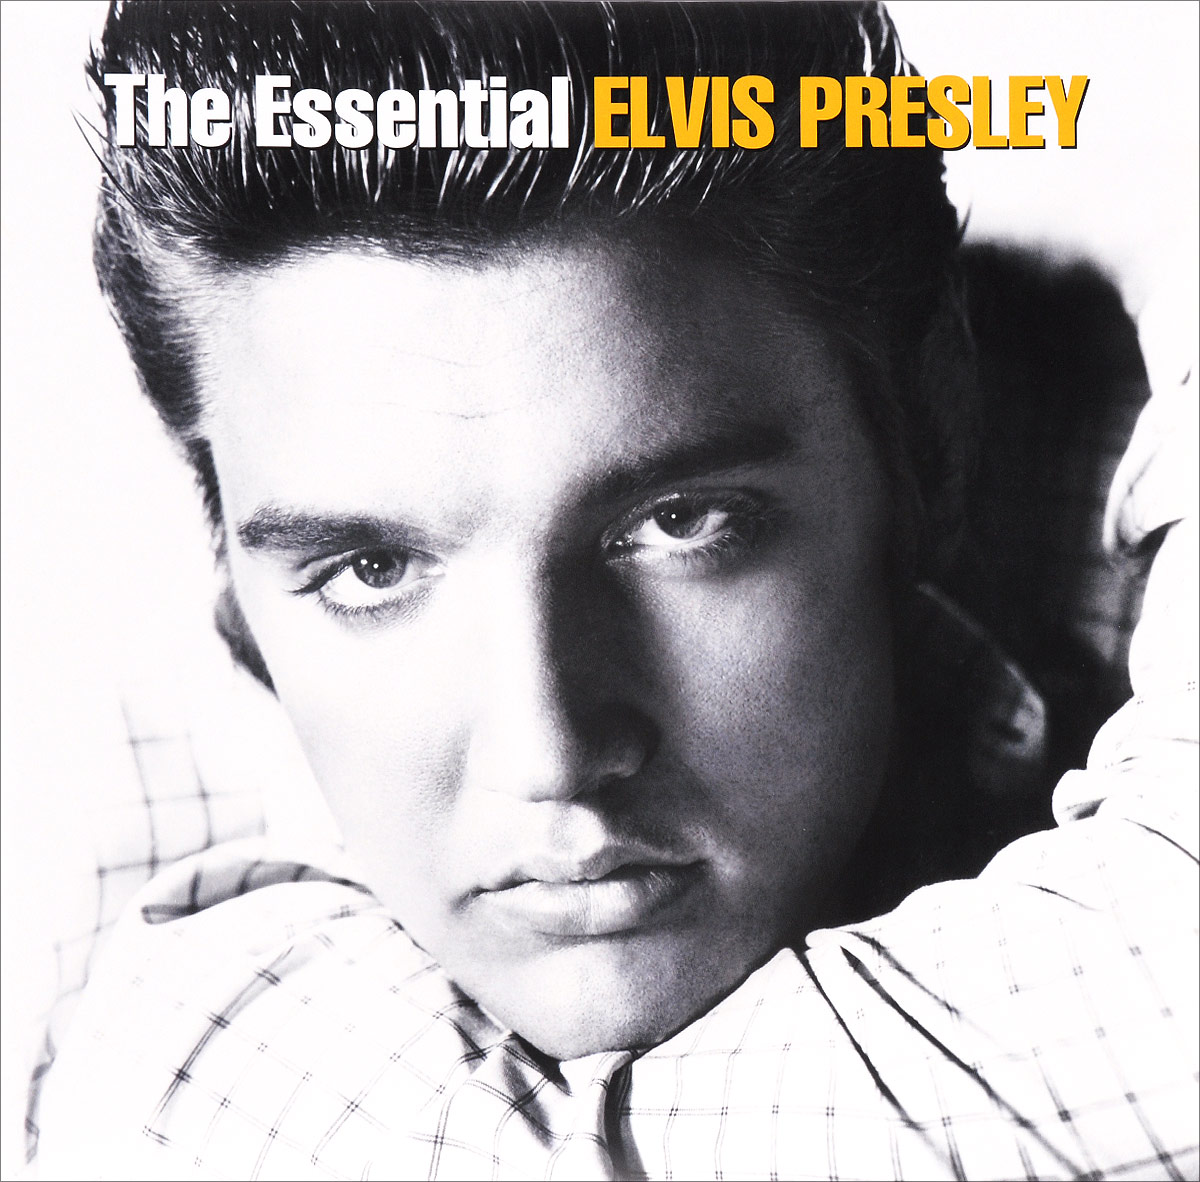 Элвис Пресли Elvis Presley. The Essential (2 LP)